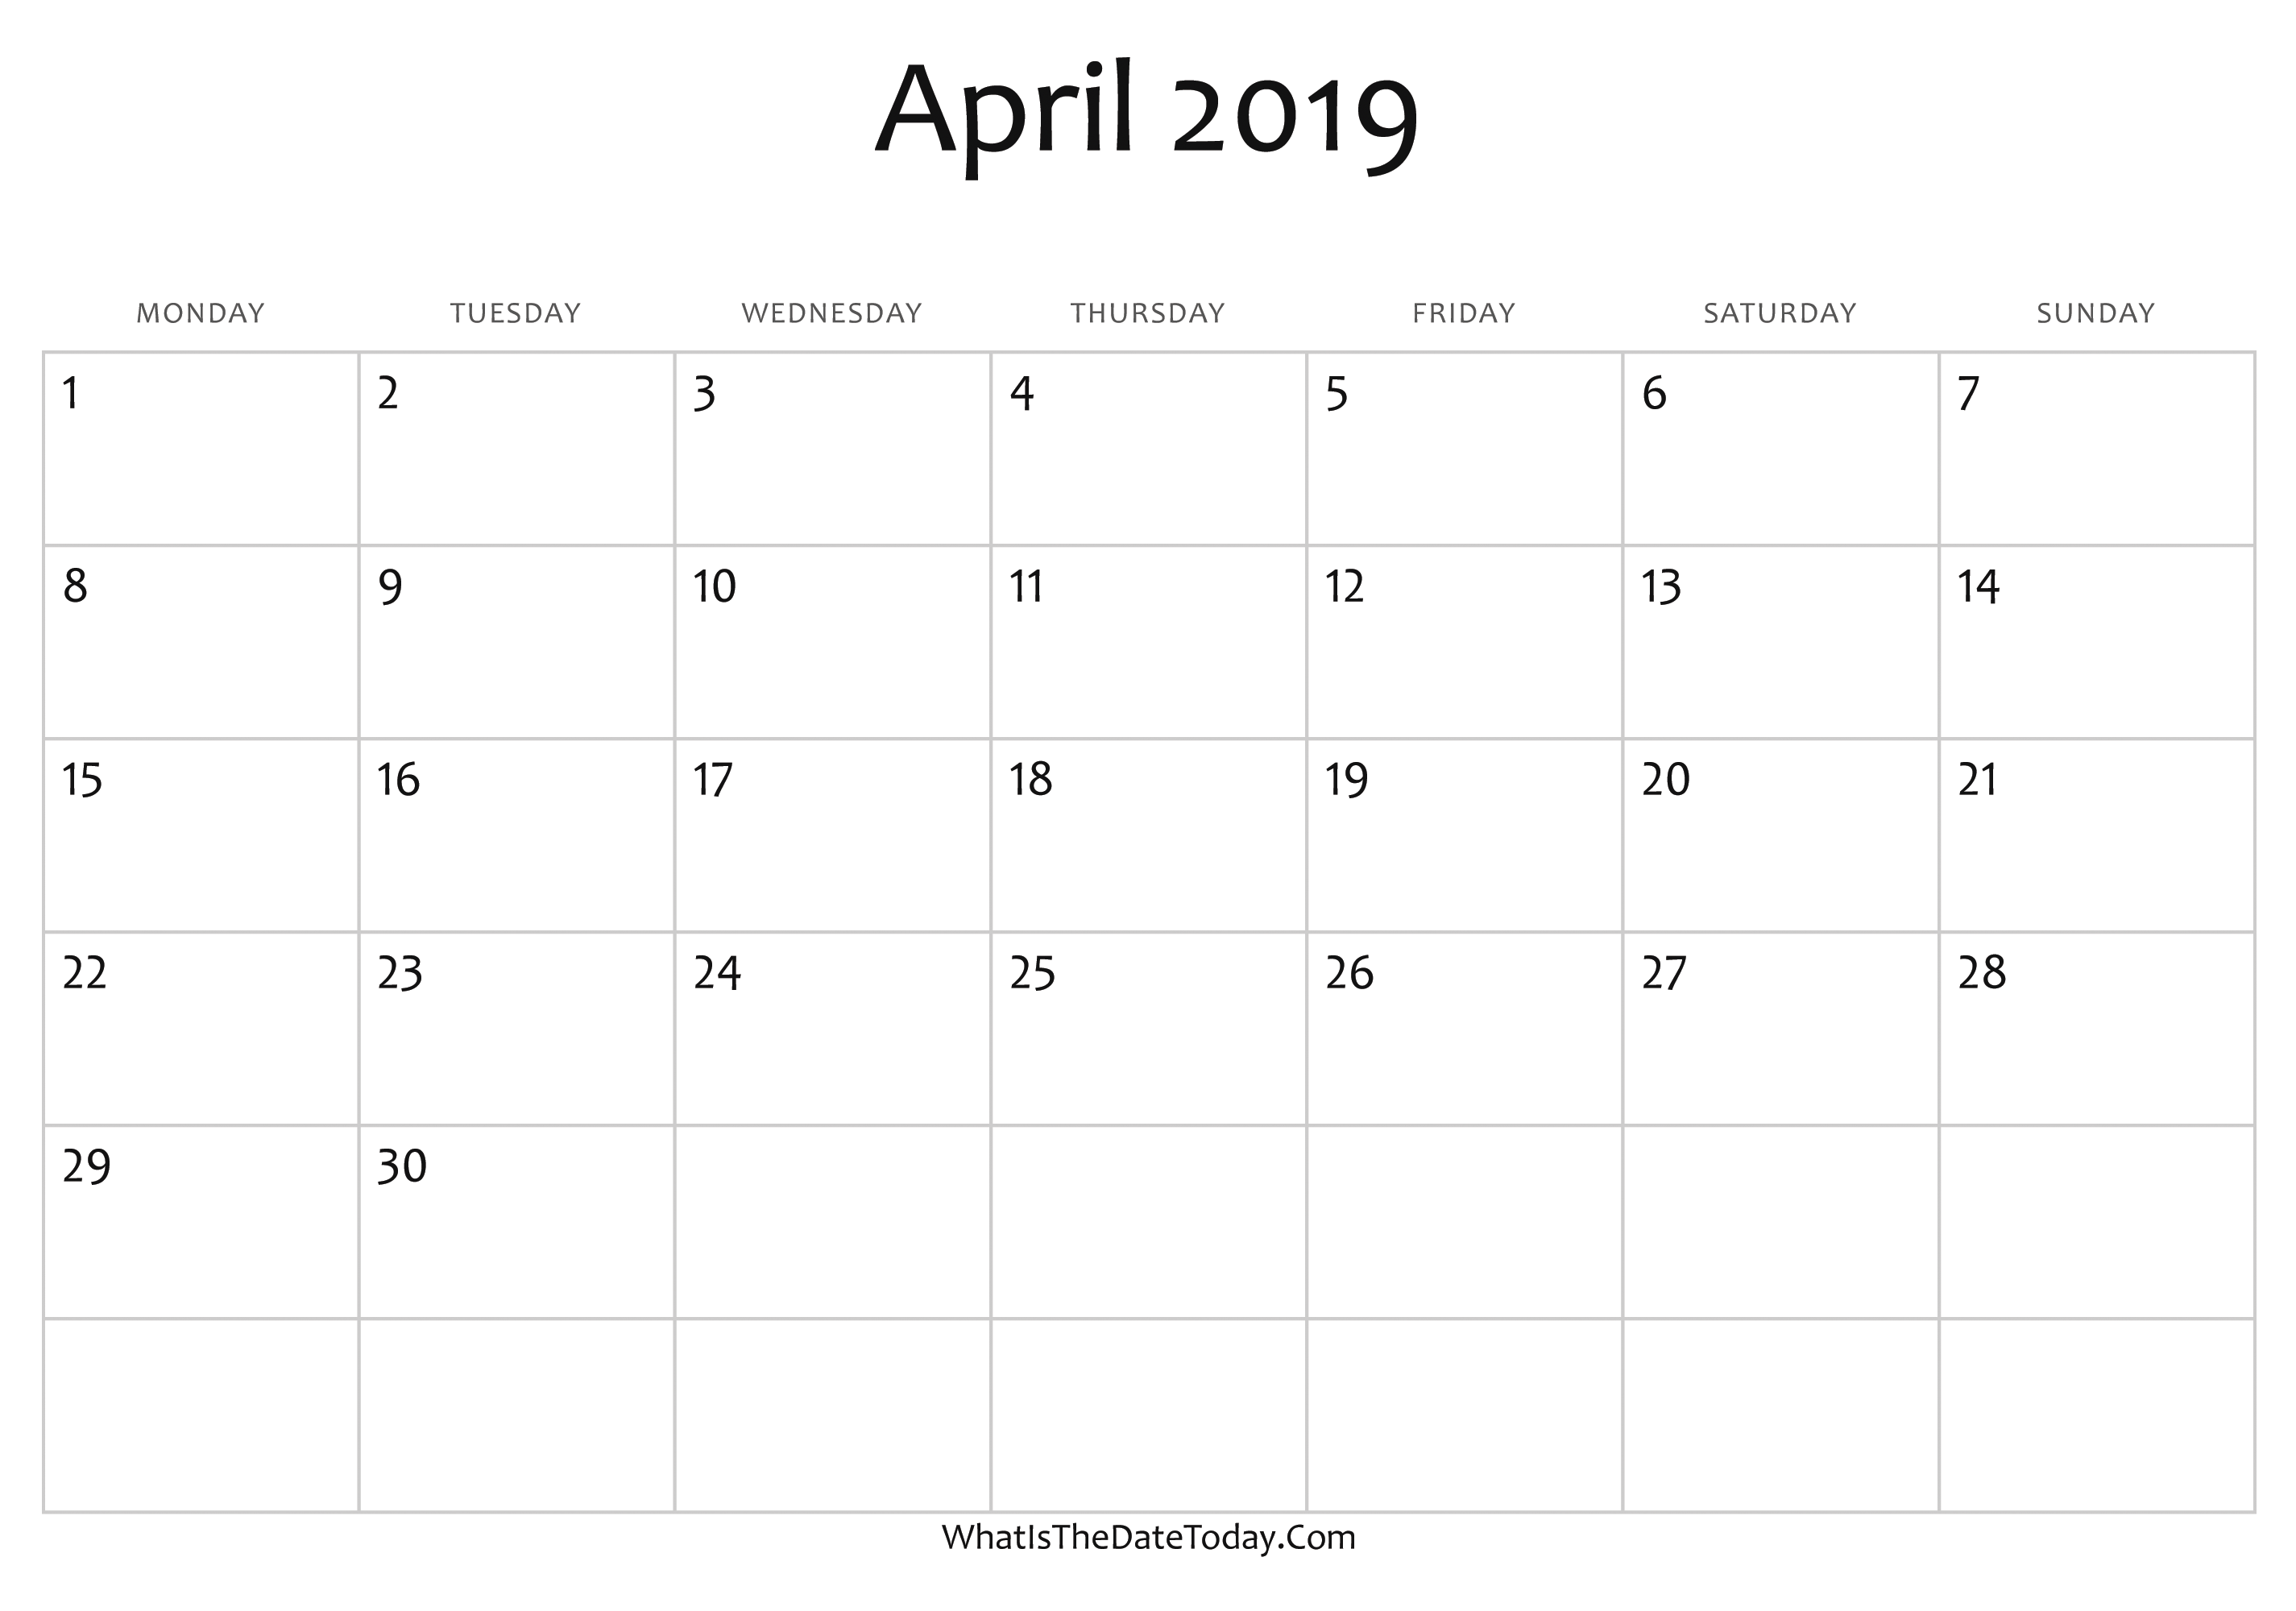 Calendar 2019 Editable Blank April Calendar 2019 Editable | Whatisthedatetoday.Com